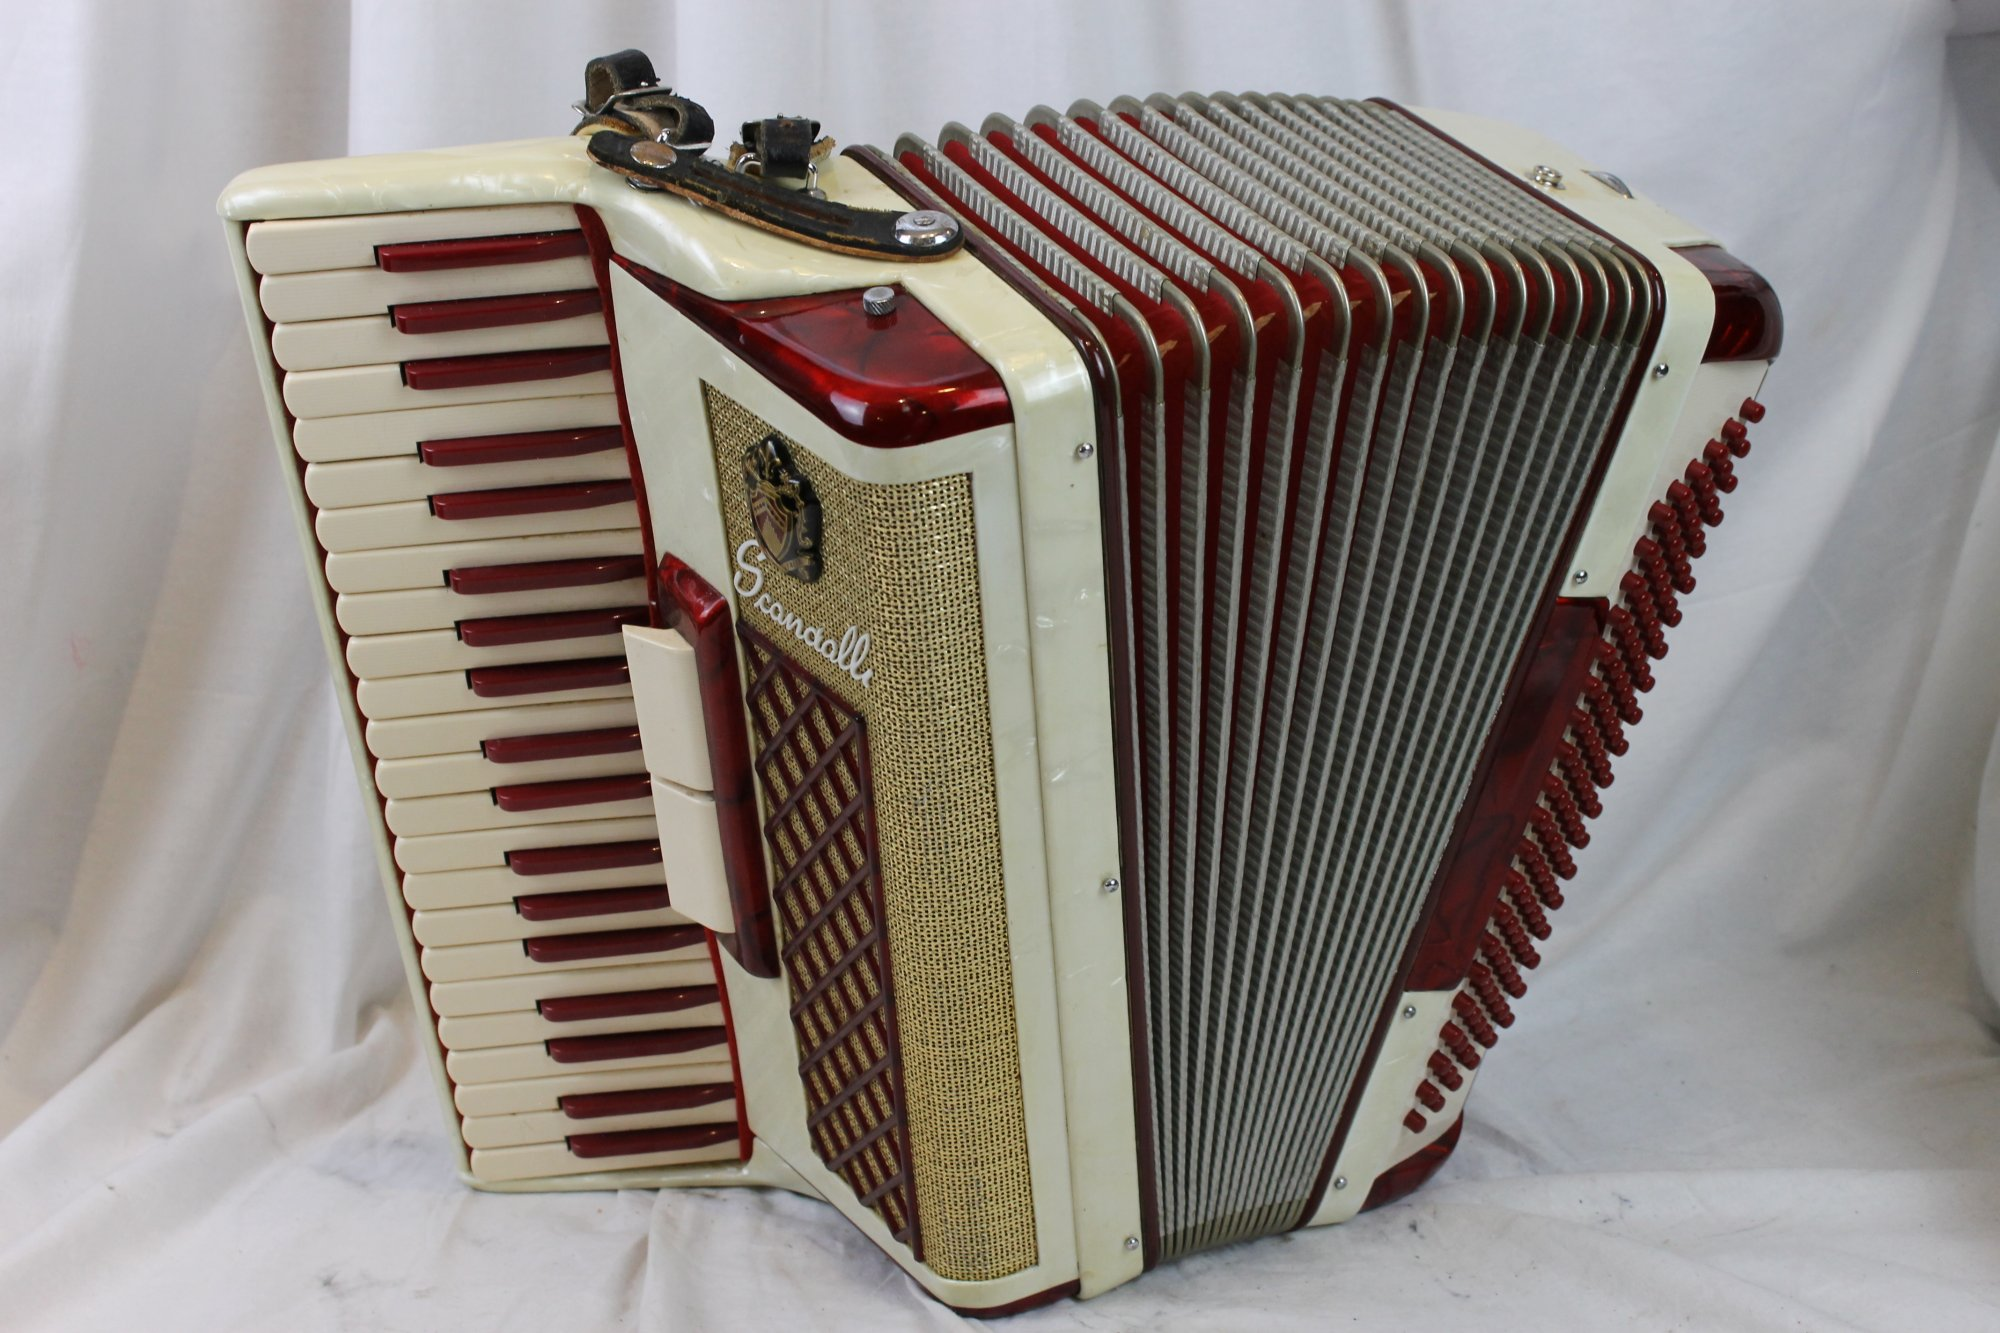 2880 - Red Cream Scandalli Piano Accordion LM 41 120